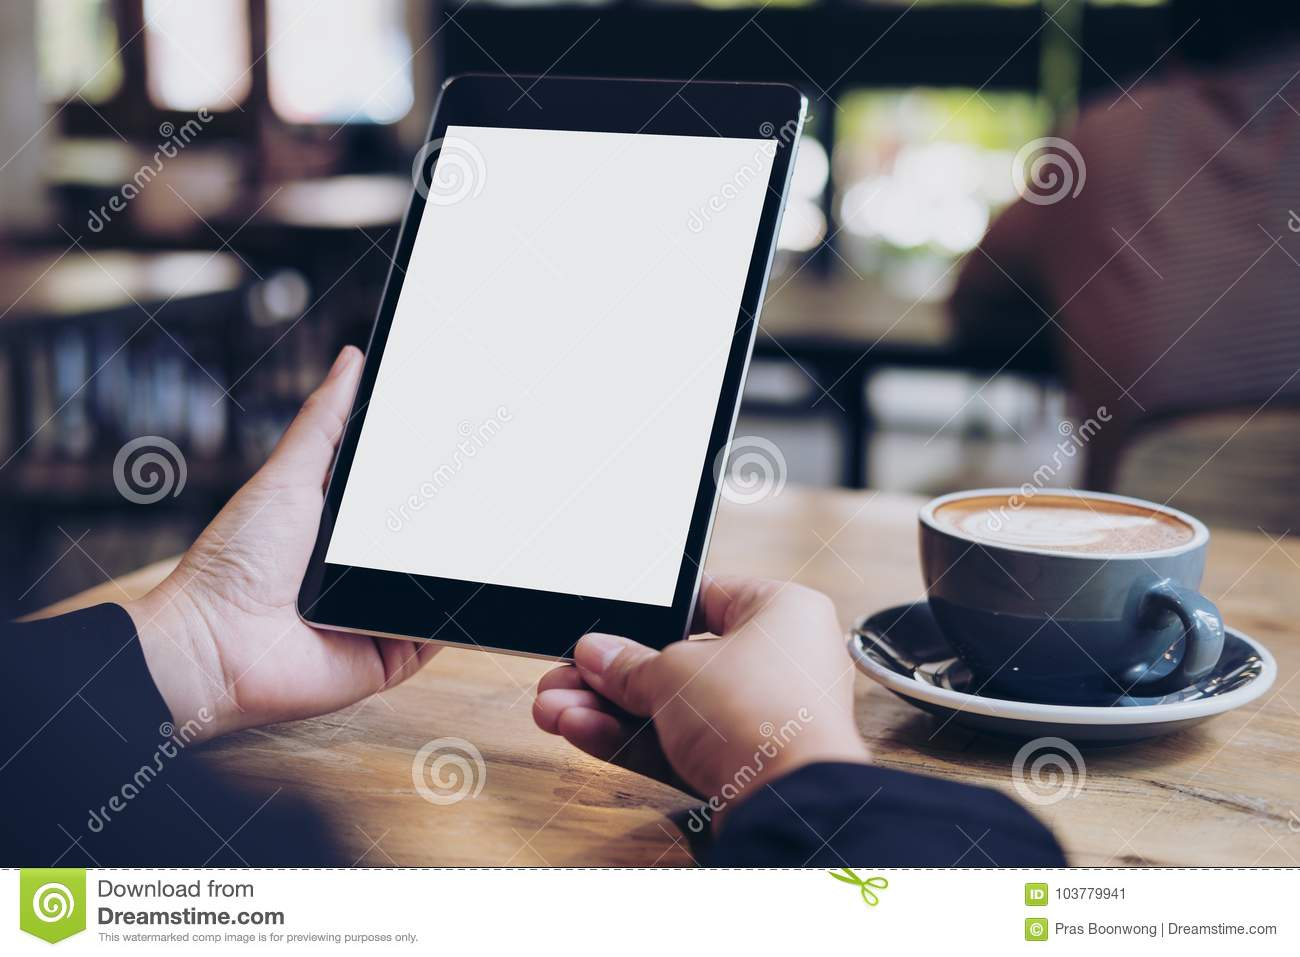 Business woman`s hands holding black tablet with white blank screen and coffee cup on wooden table in cafe